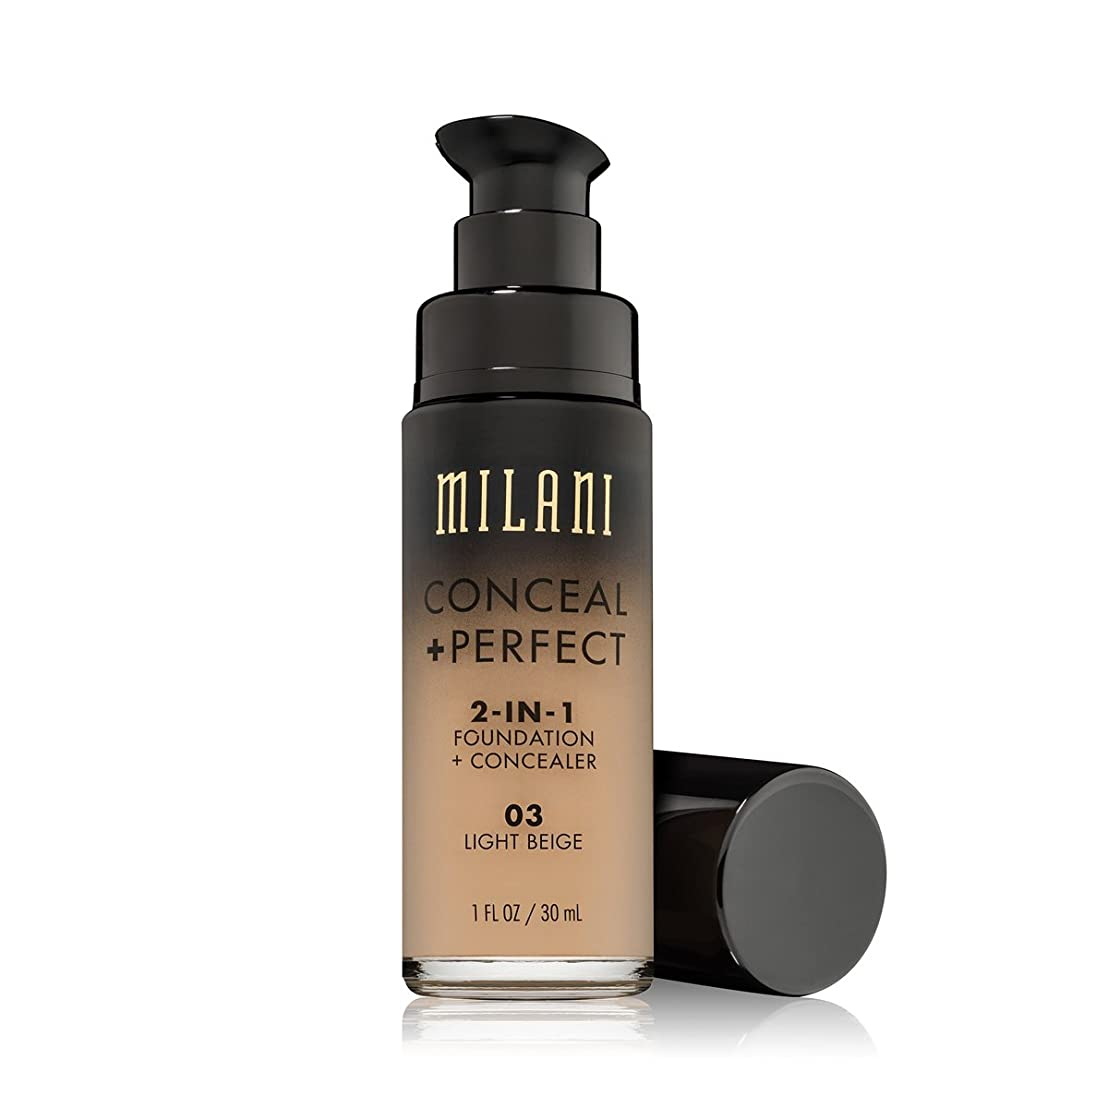 排除する野生チーターMILANI Conceal + Perfect 2-In-1 Foundation + Concealer - Light Beige (並行輸入品)